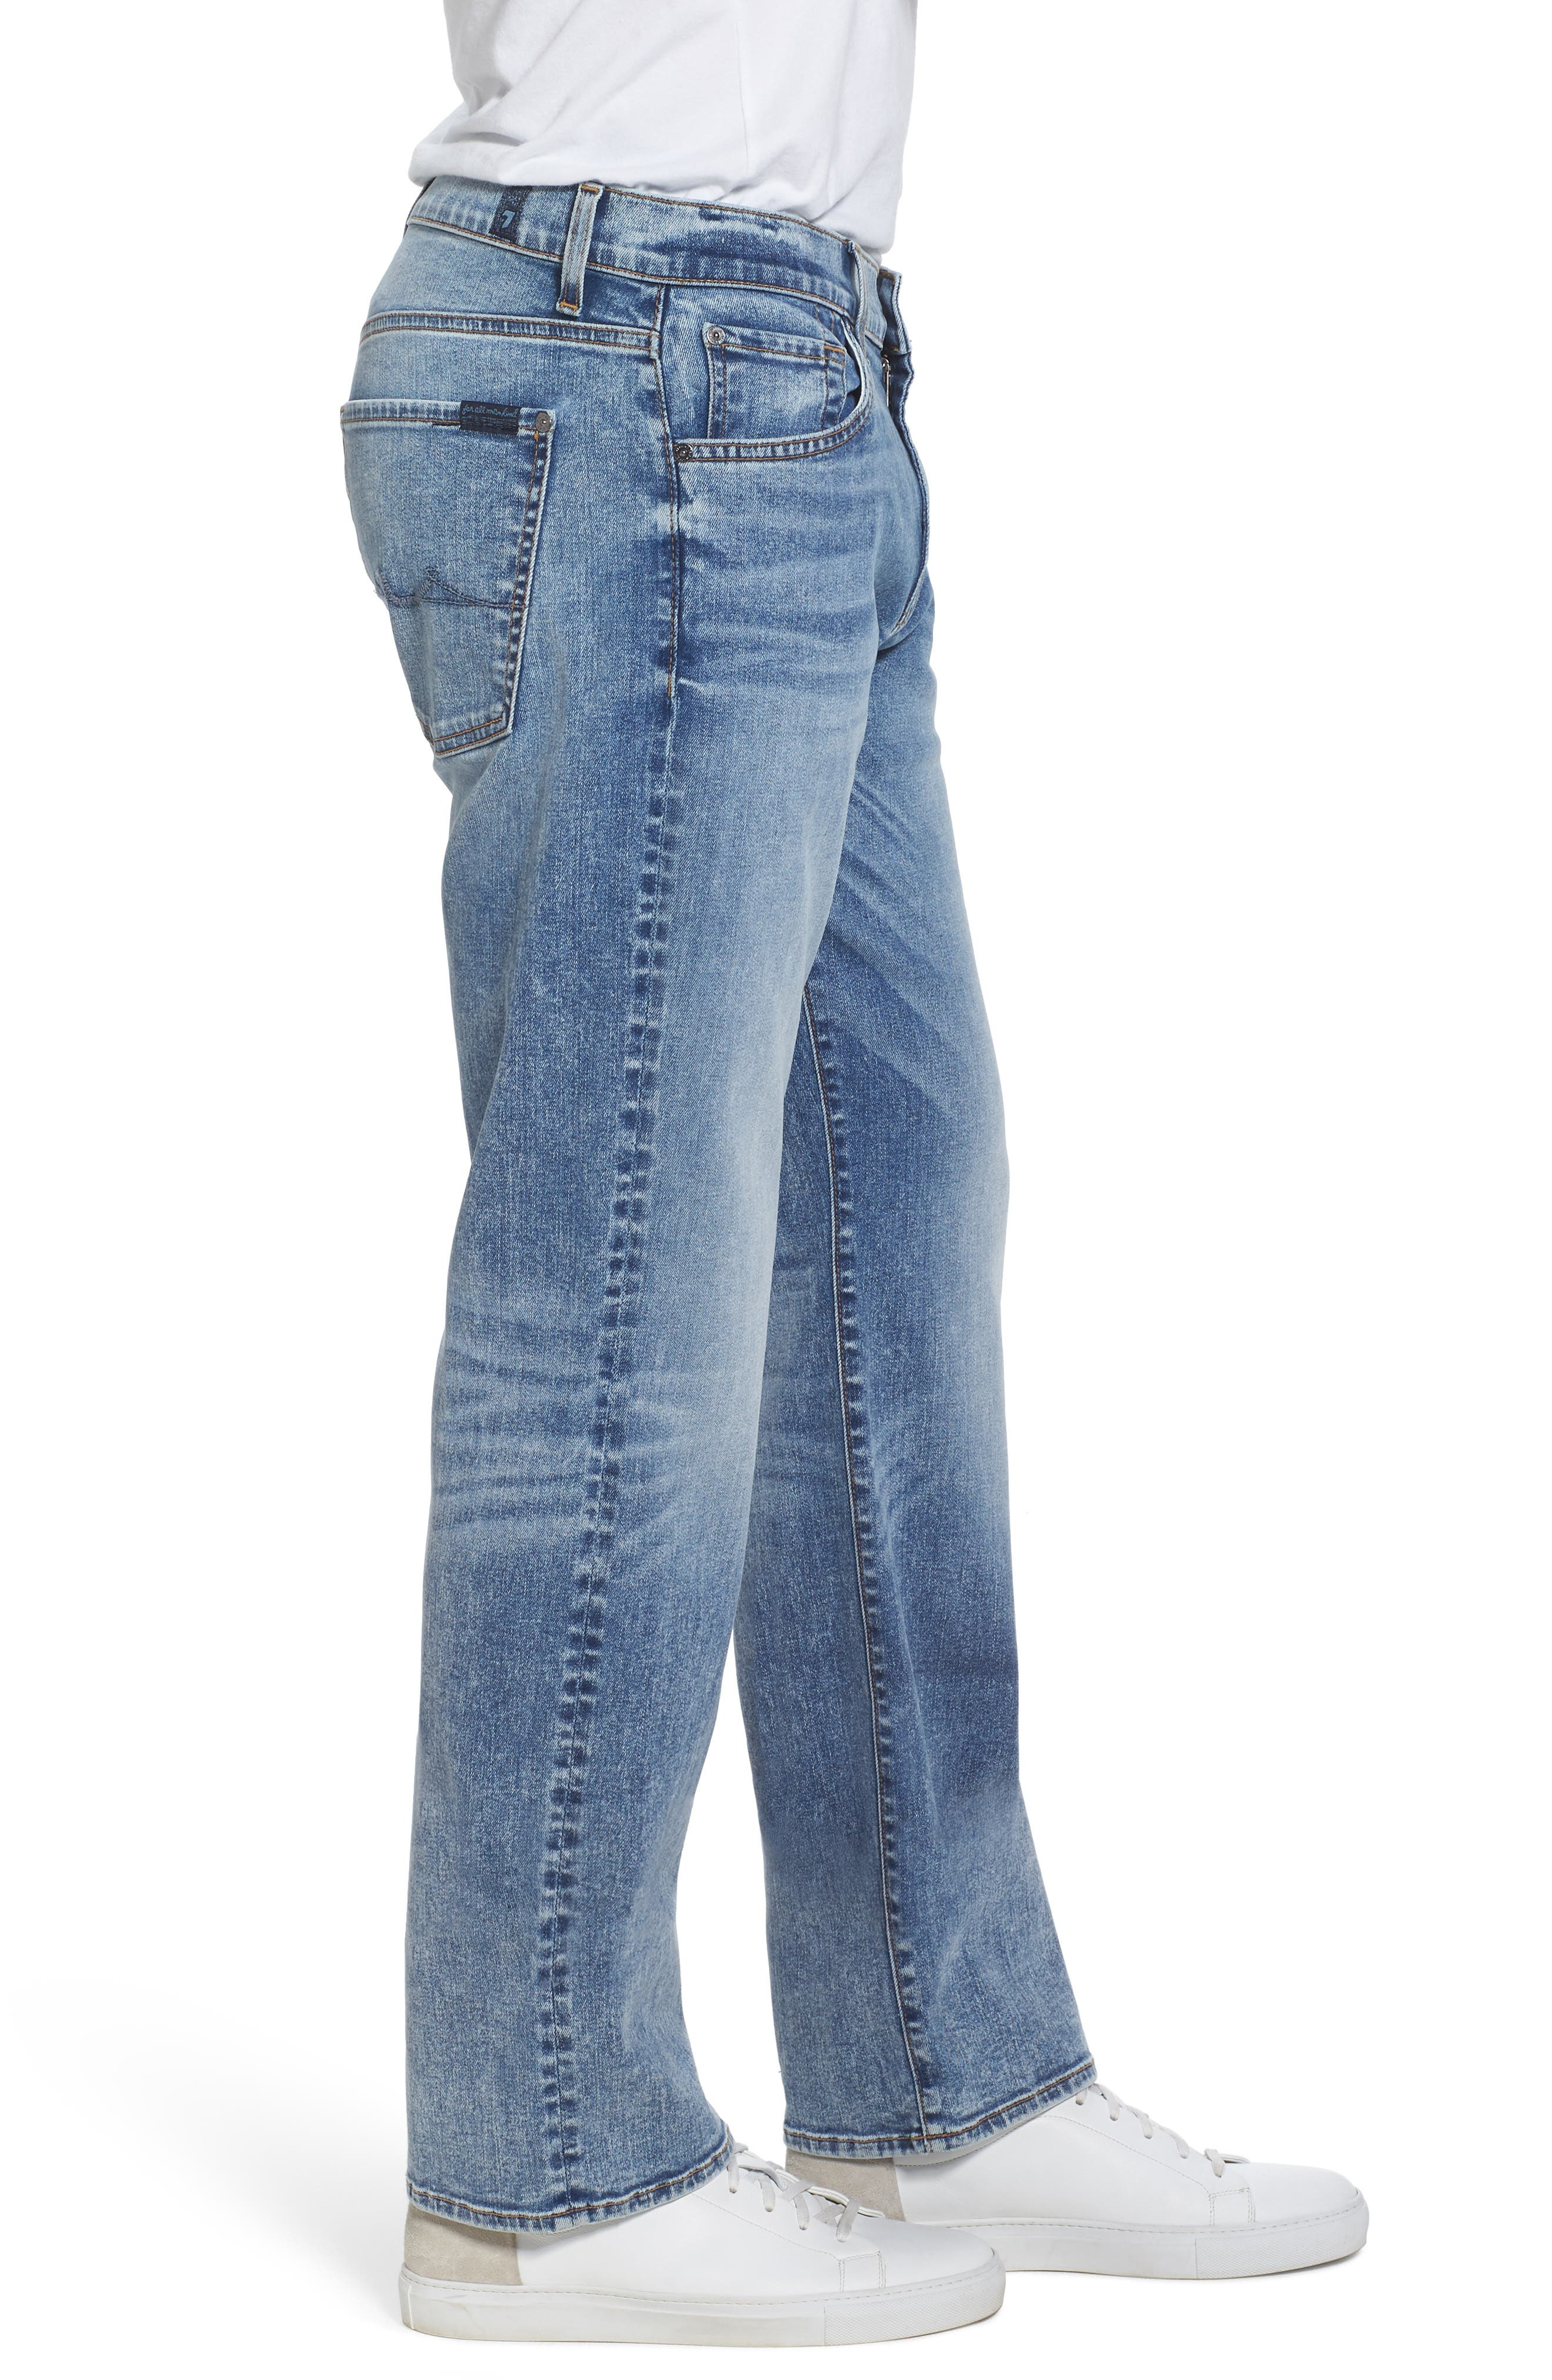 Austyn - Luxe Performance Relaxed Fit Jeans,                             Alternate thumbnail 3, color,                             404